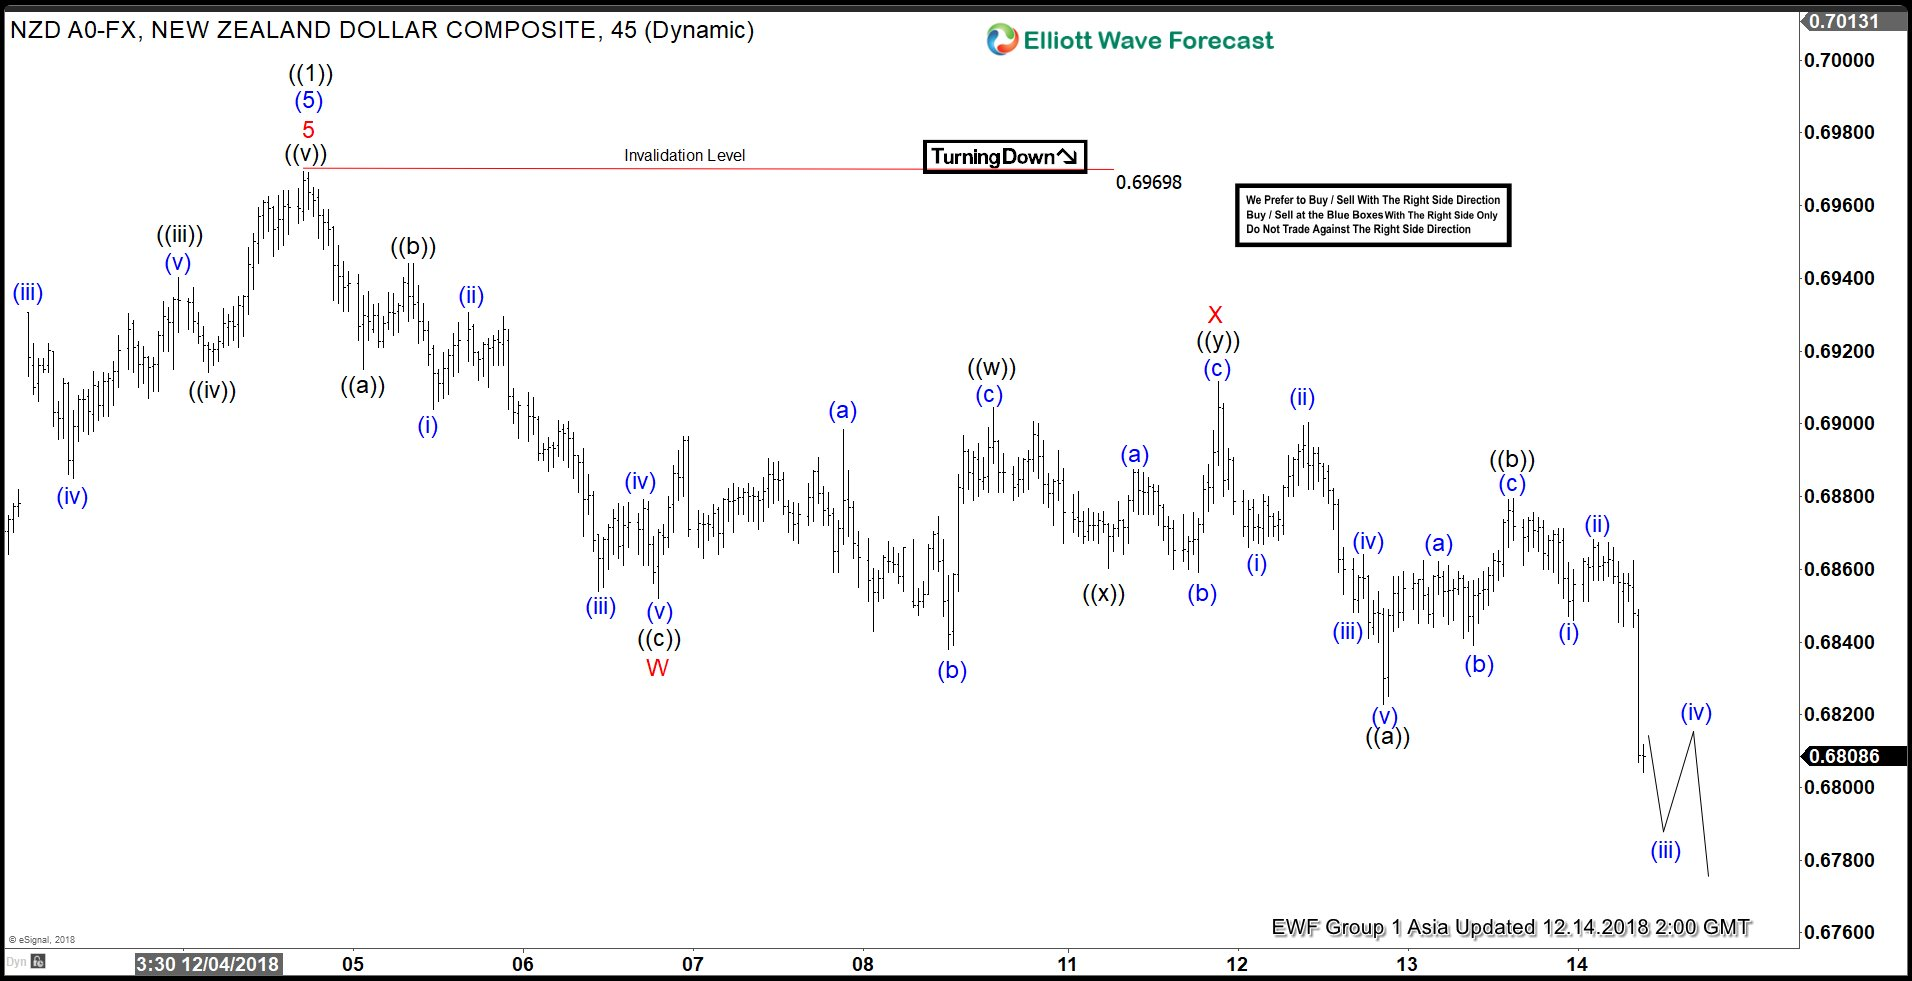 NZDUSD Elliott Wave View suggests pullback still in progress